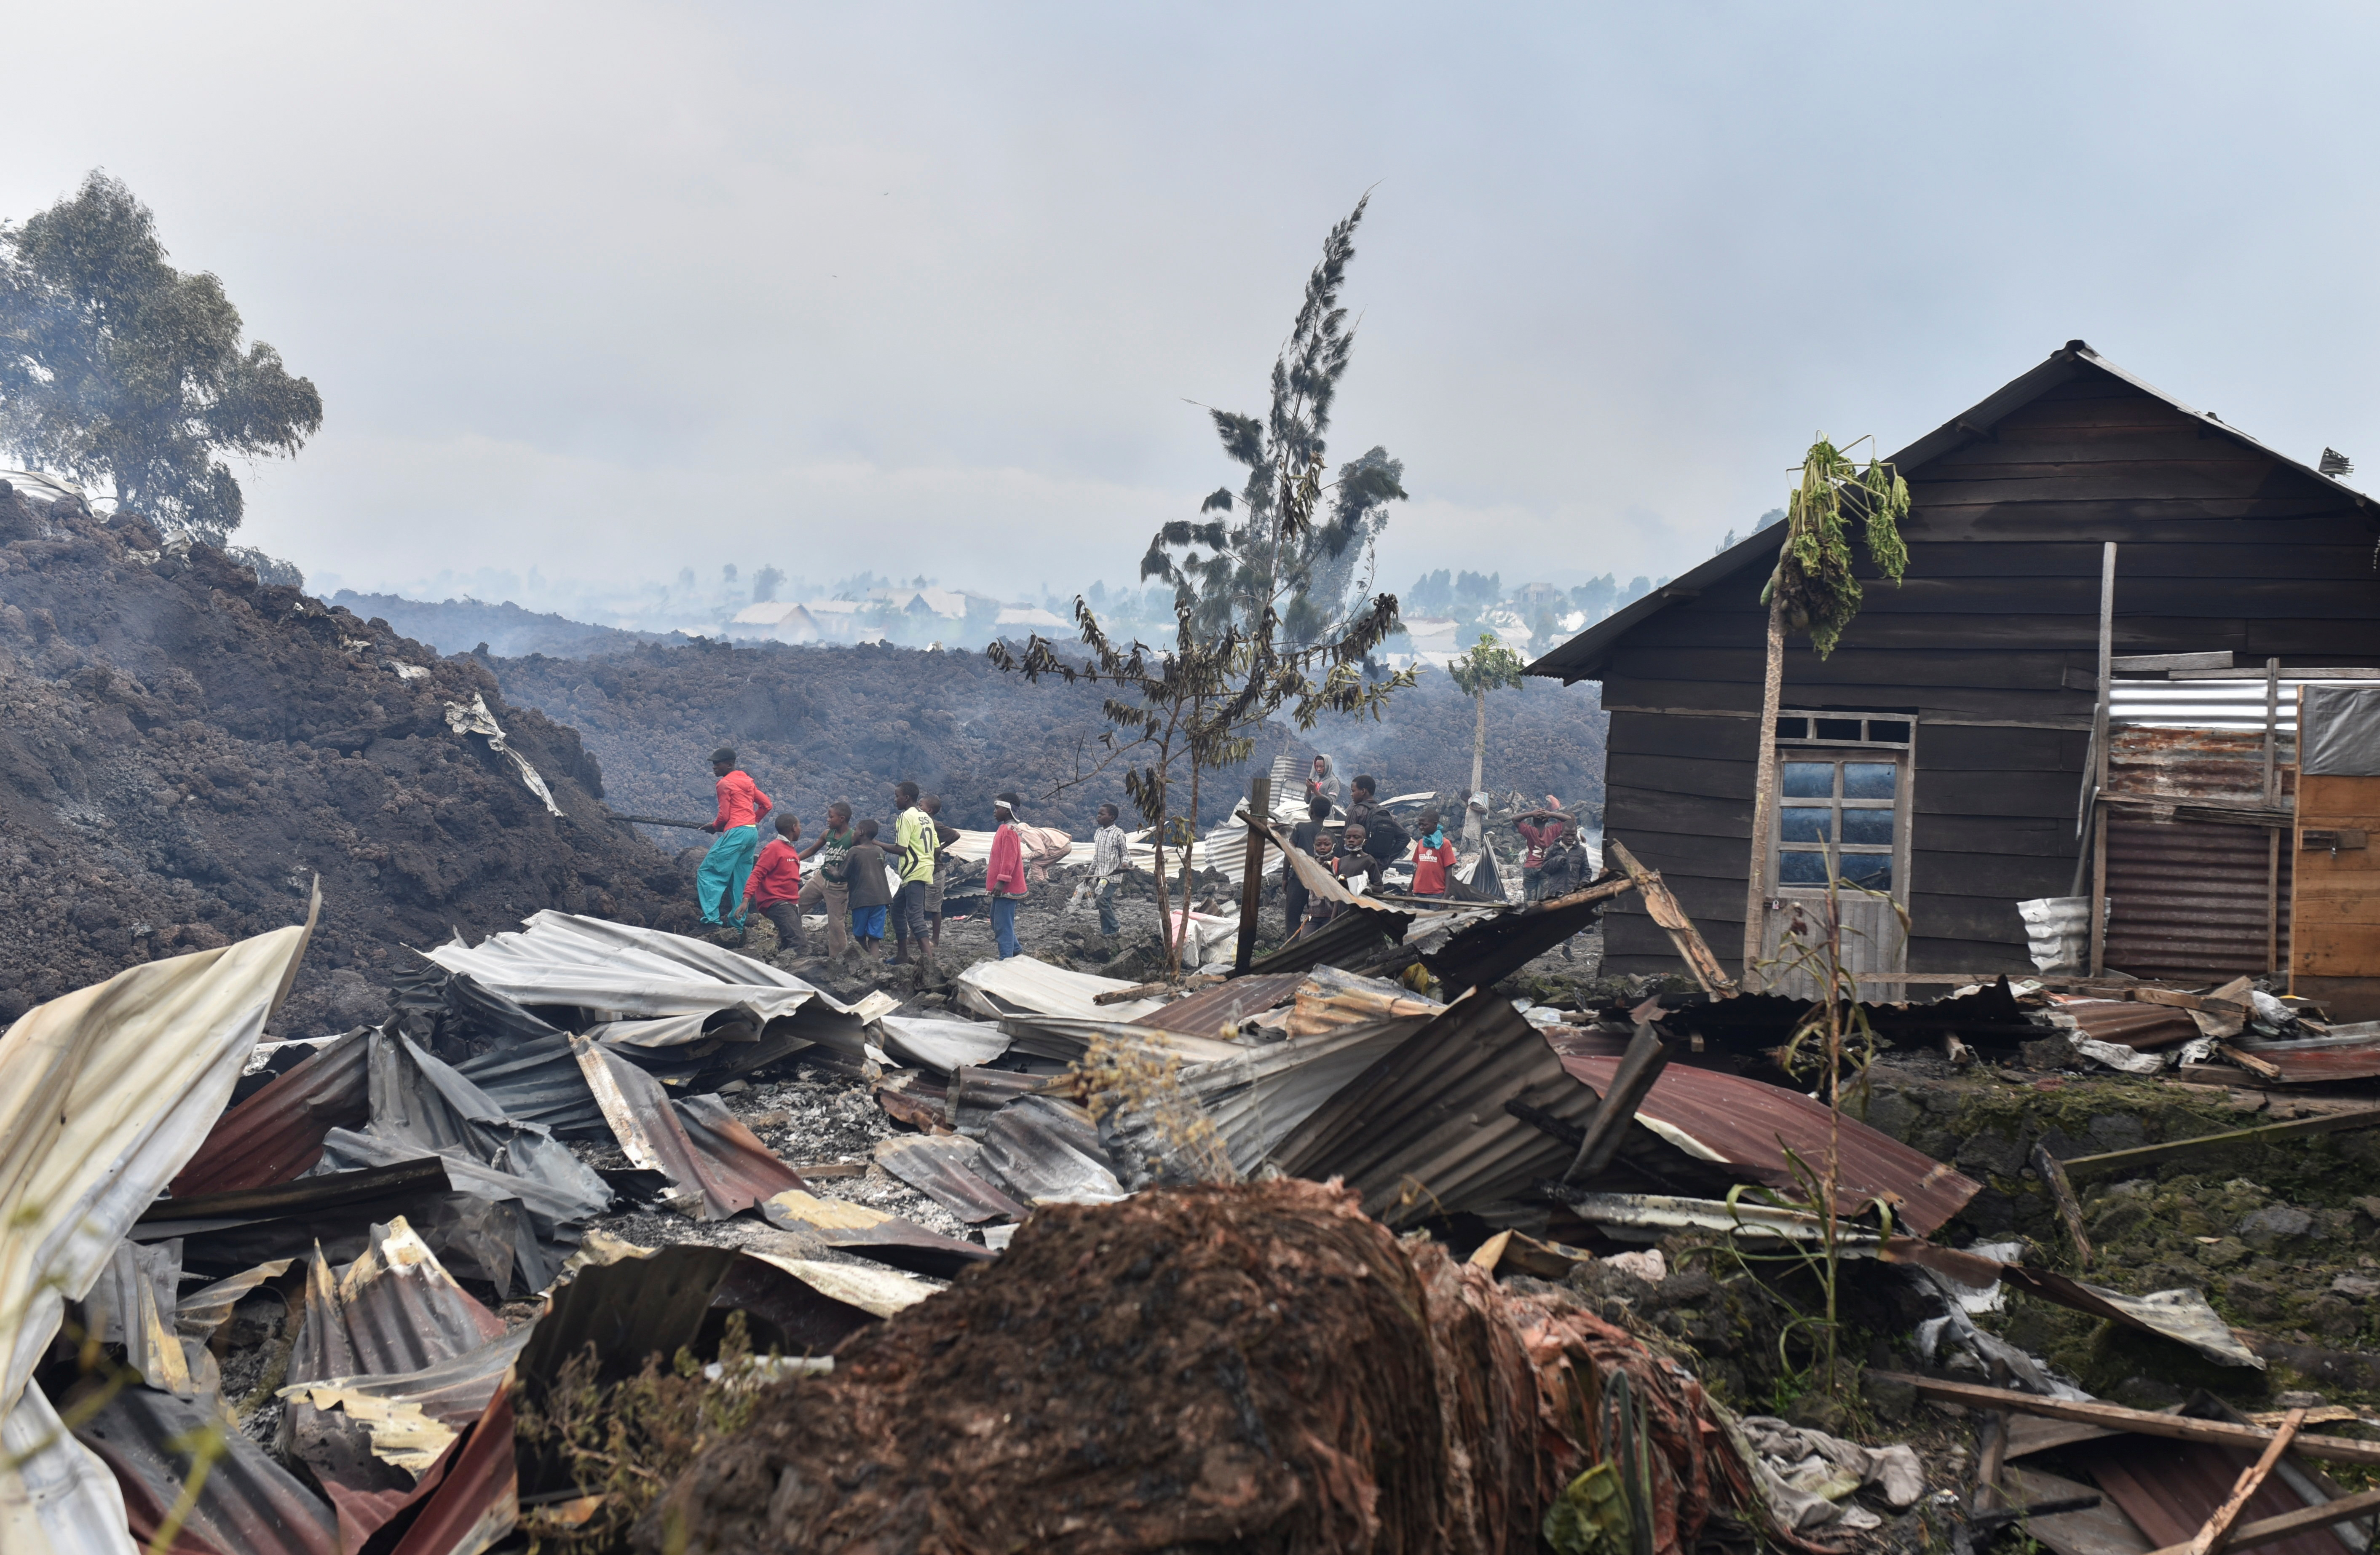 Residents pick up remains of their destroyed homes from the smouldering lava deposited by the eruption of Mount Nyiragongo volcano near Goma, in the Democratic Republic of Congo May 23, 2021. REUTERS/Olivia Acland